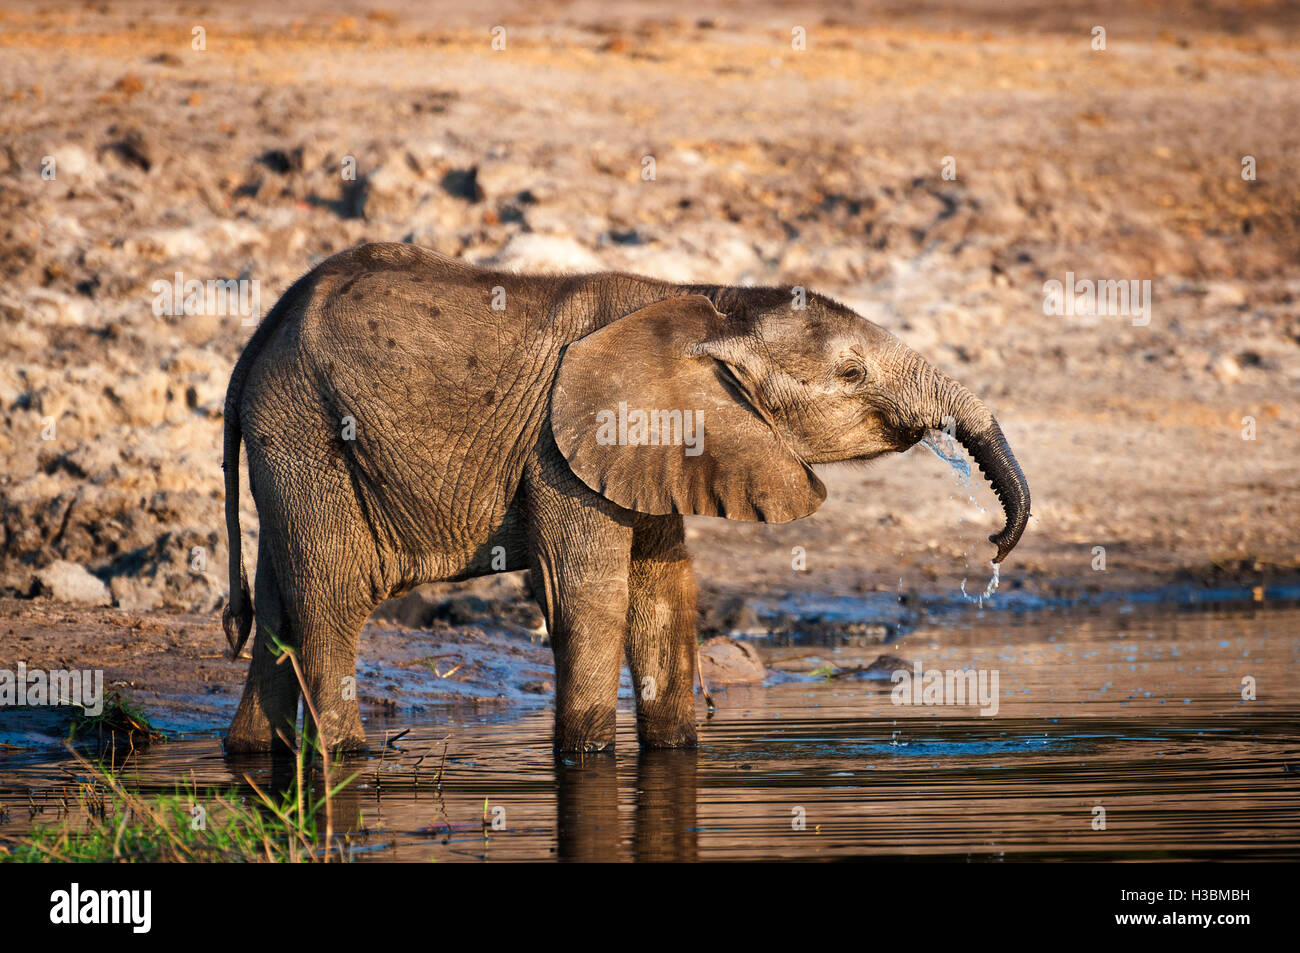 Elephant cub drinking water in the Chobe River, Chobe National Park, in Botswana, Africa - Stock Image